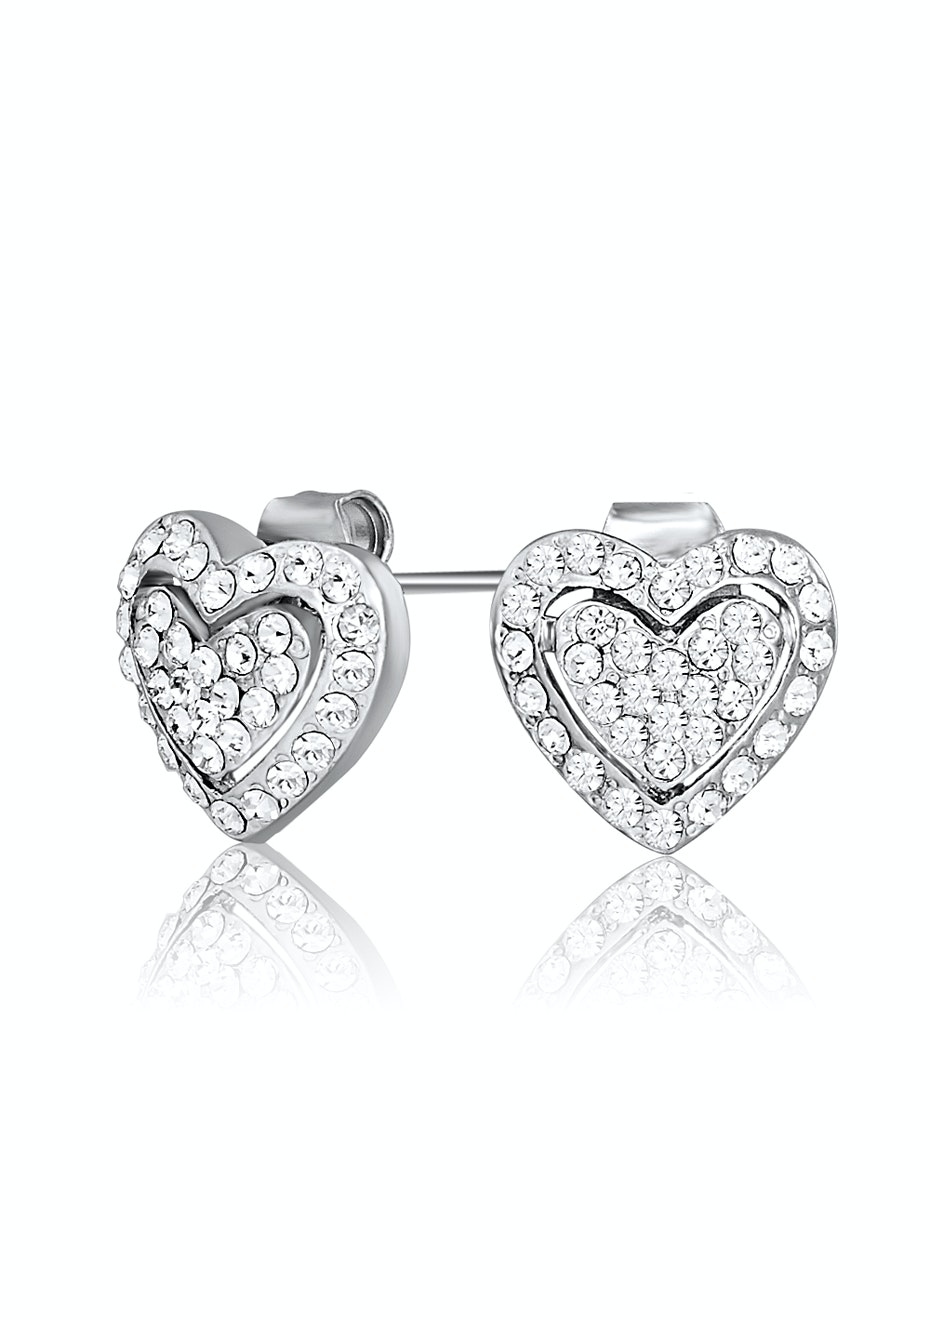 Deluxe Heart Earrings Embellished with Crystals from Swarovski